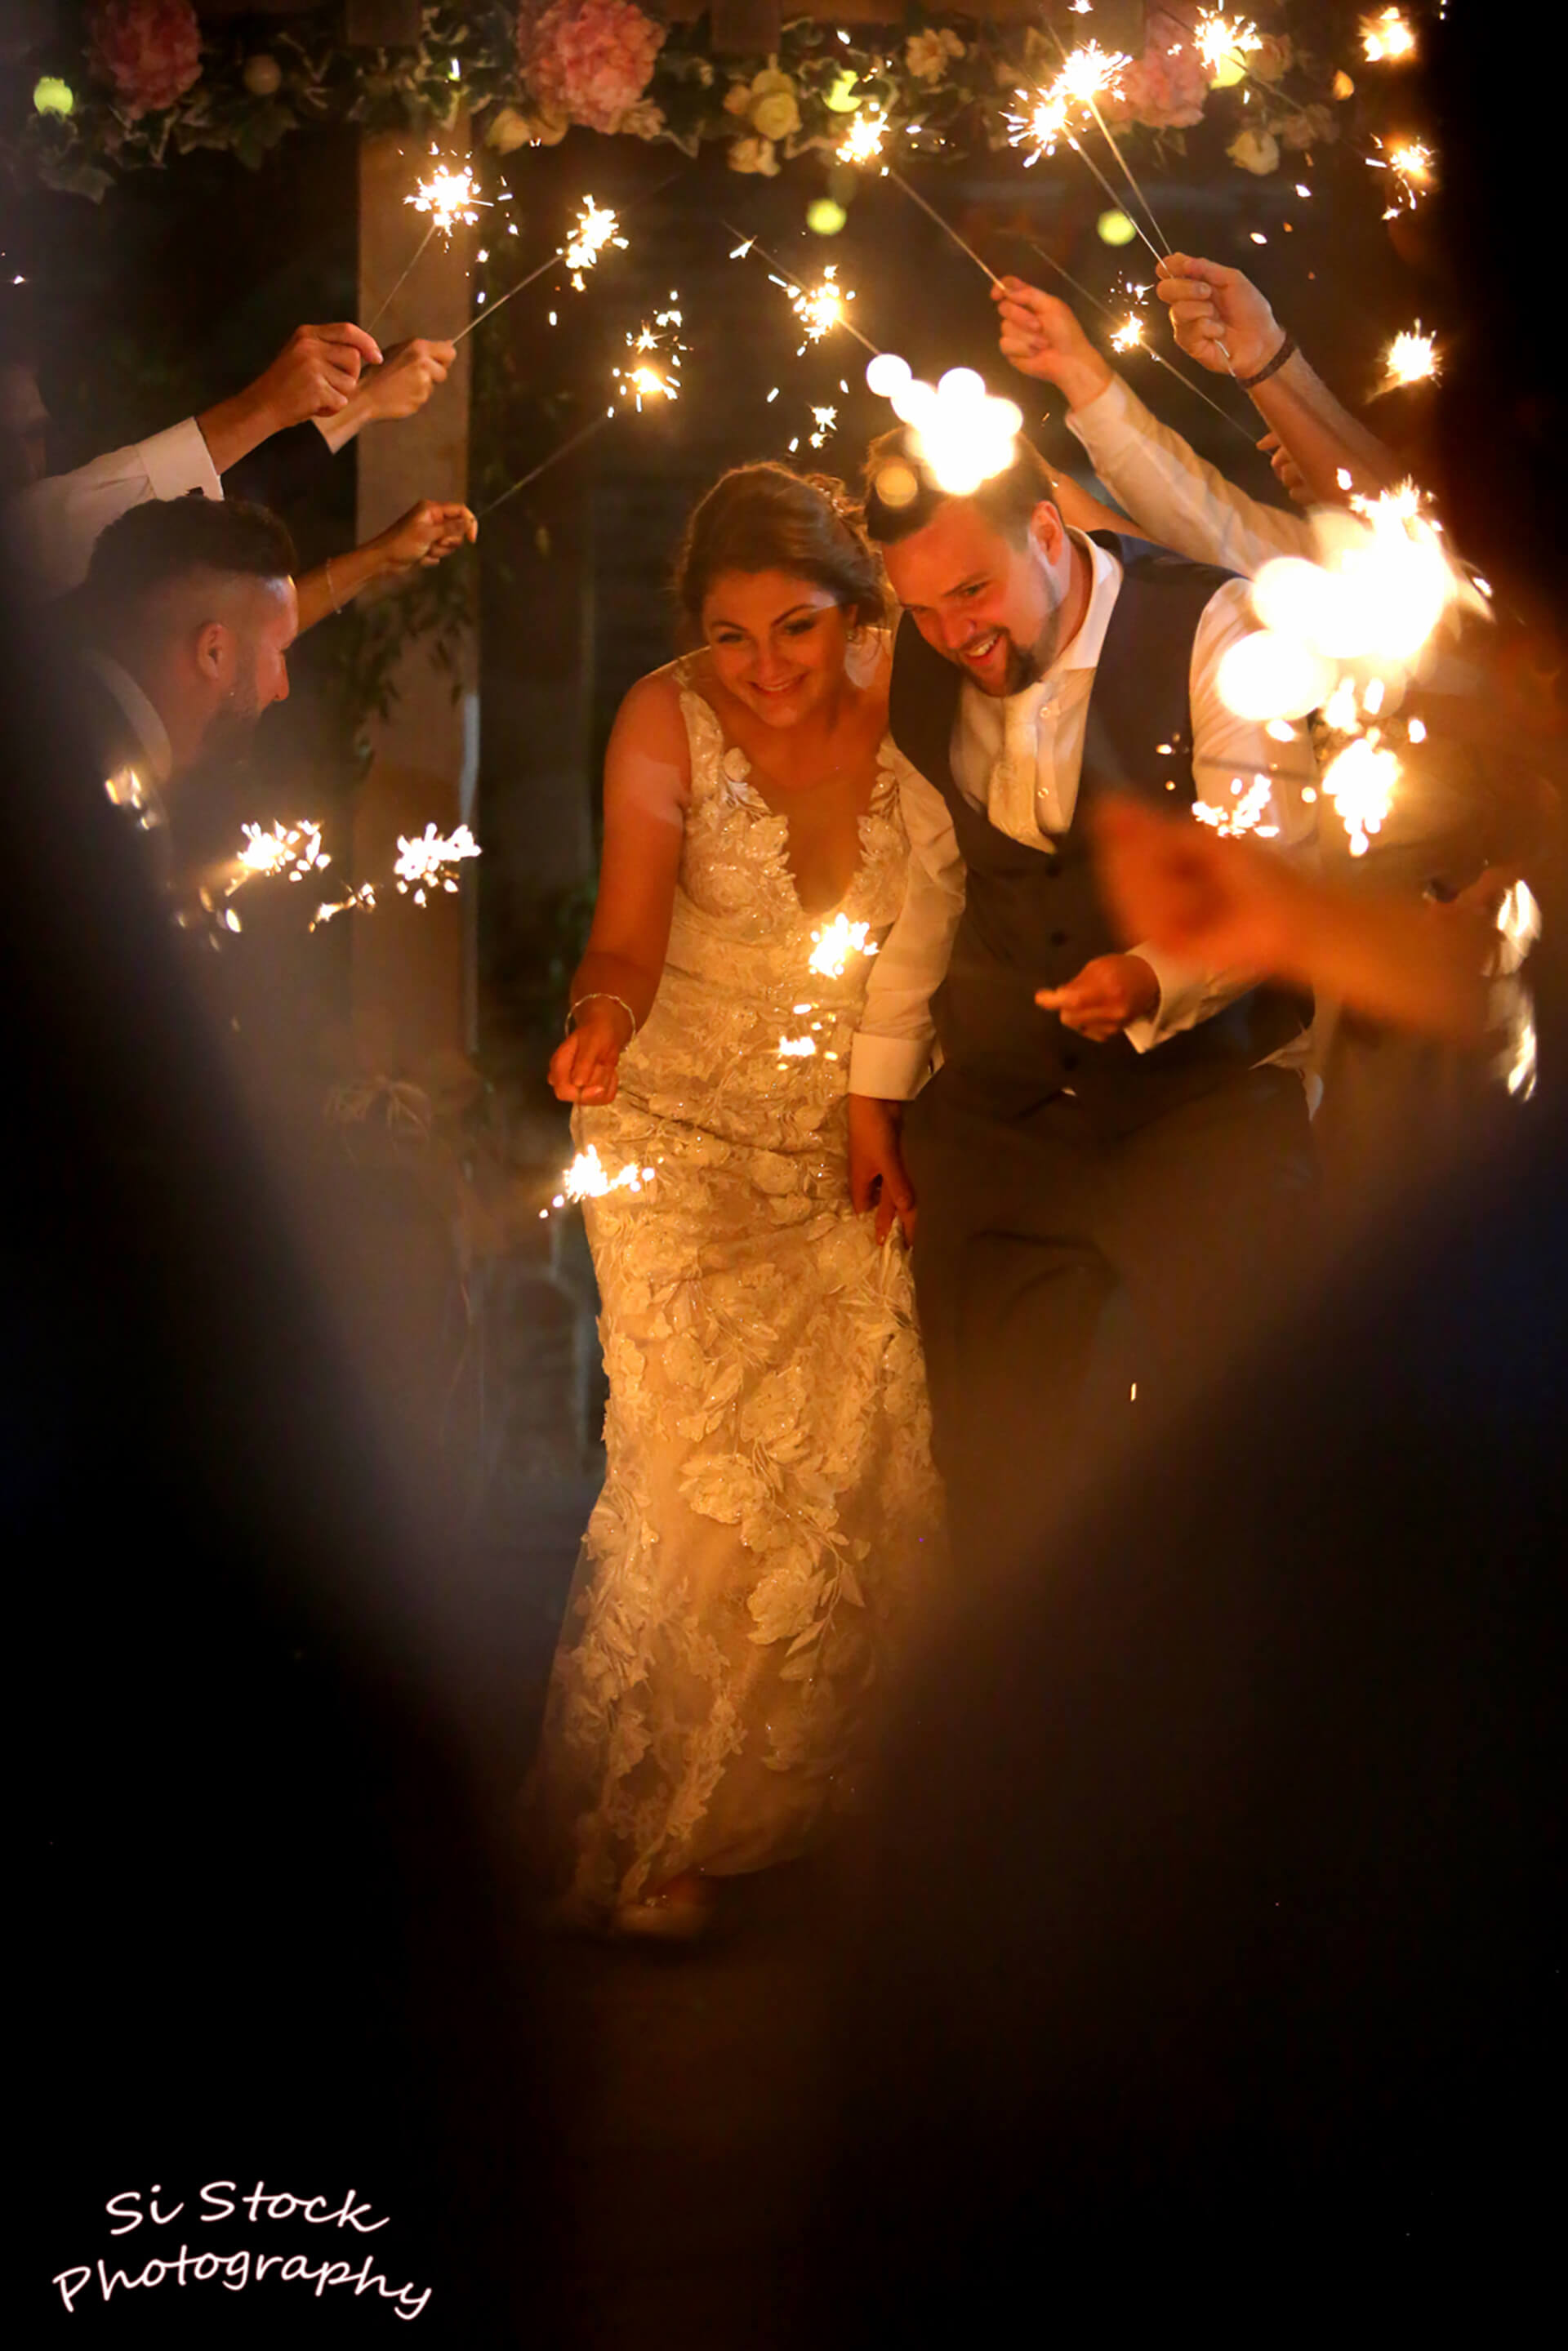 Lou and Dan surrounded by sparkle, photo taken by Simon Stock.